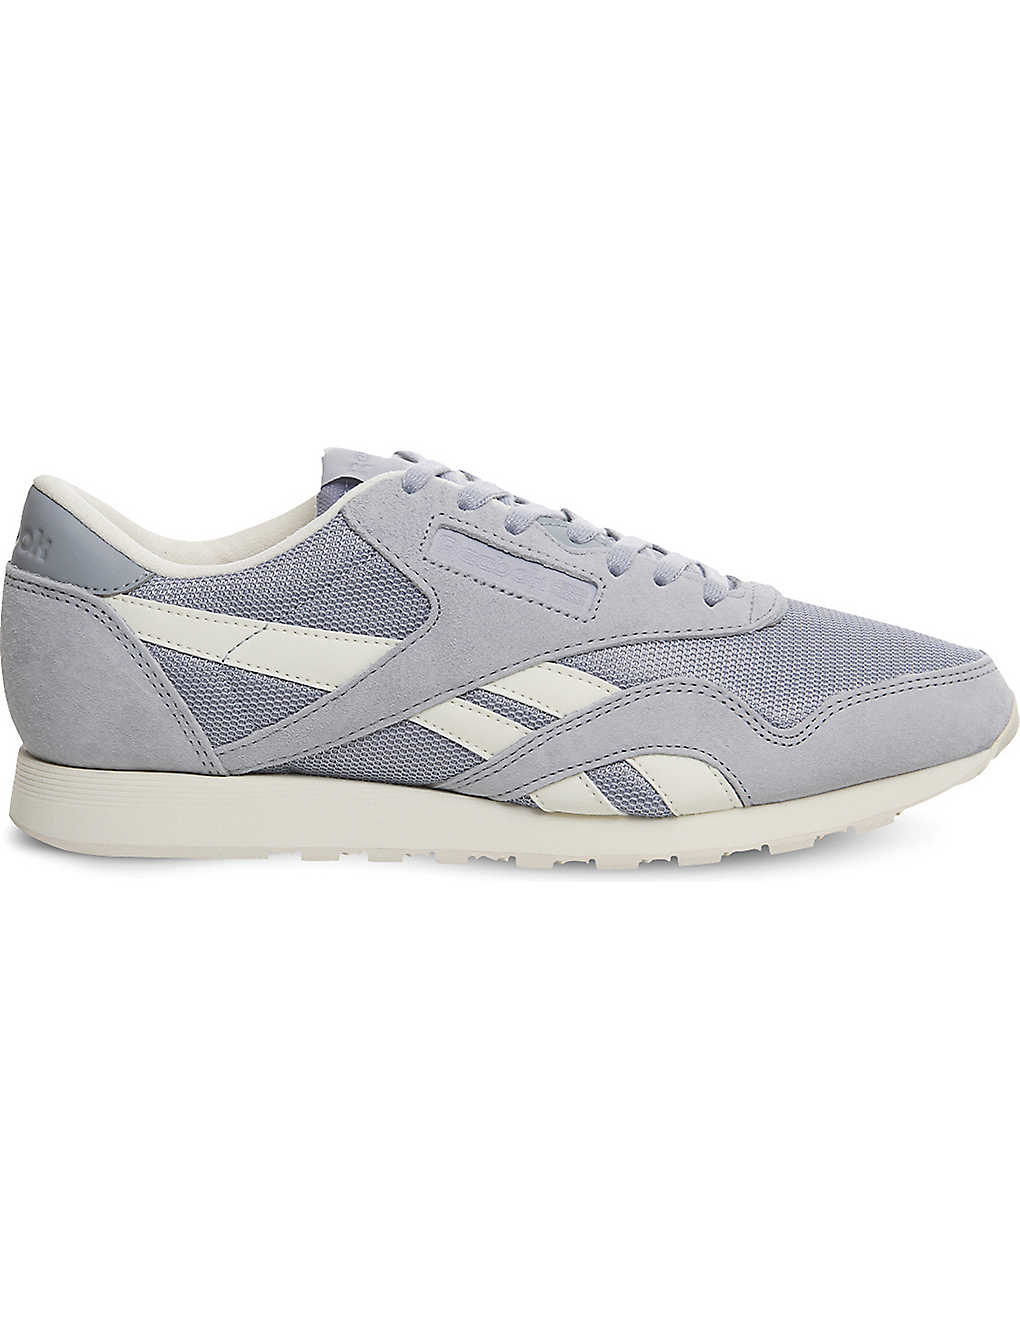 7e5801ff12a ... Classic Nylon suede trainers zoom ...